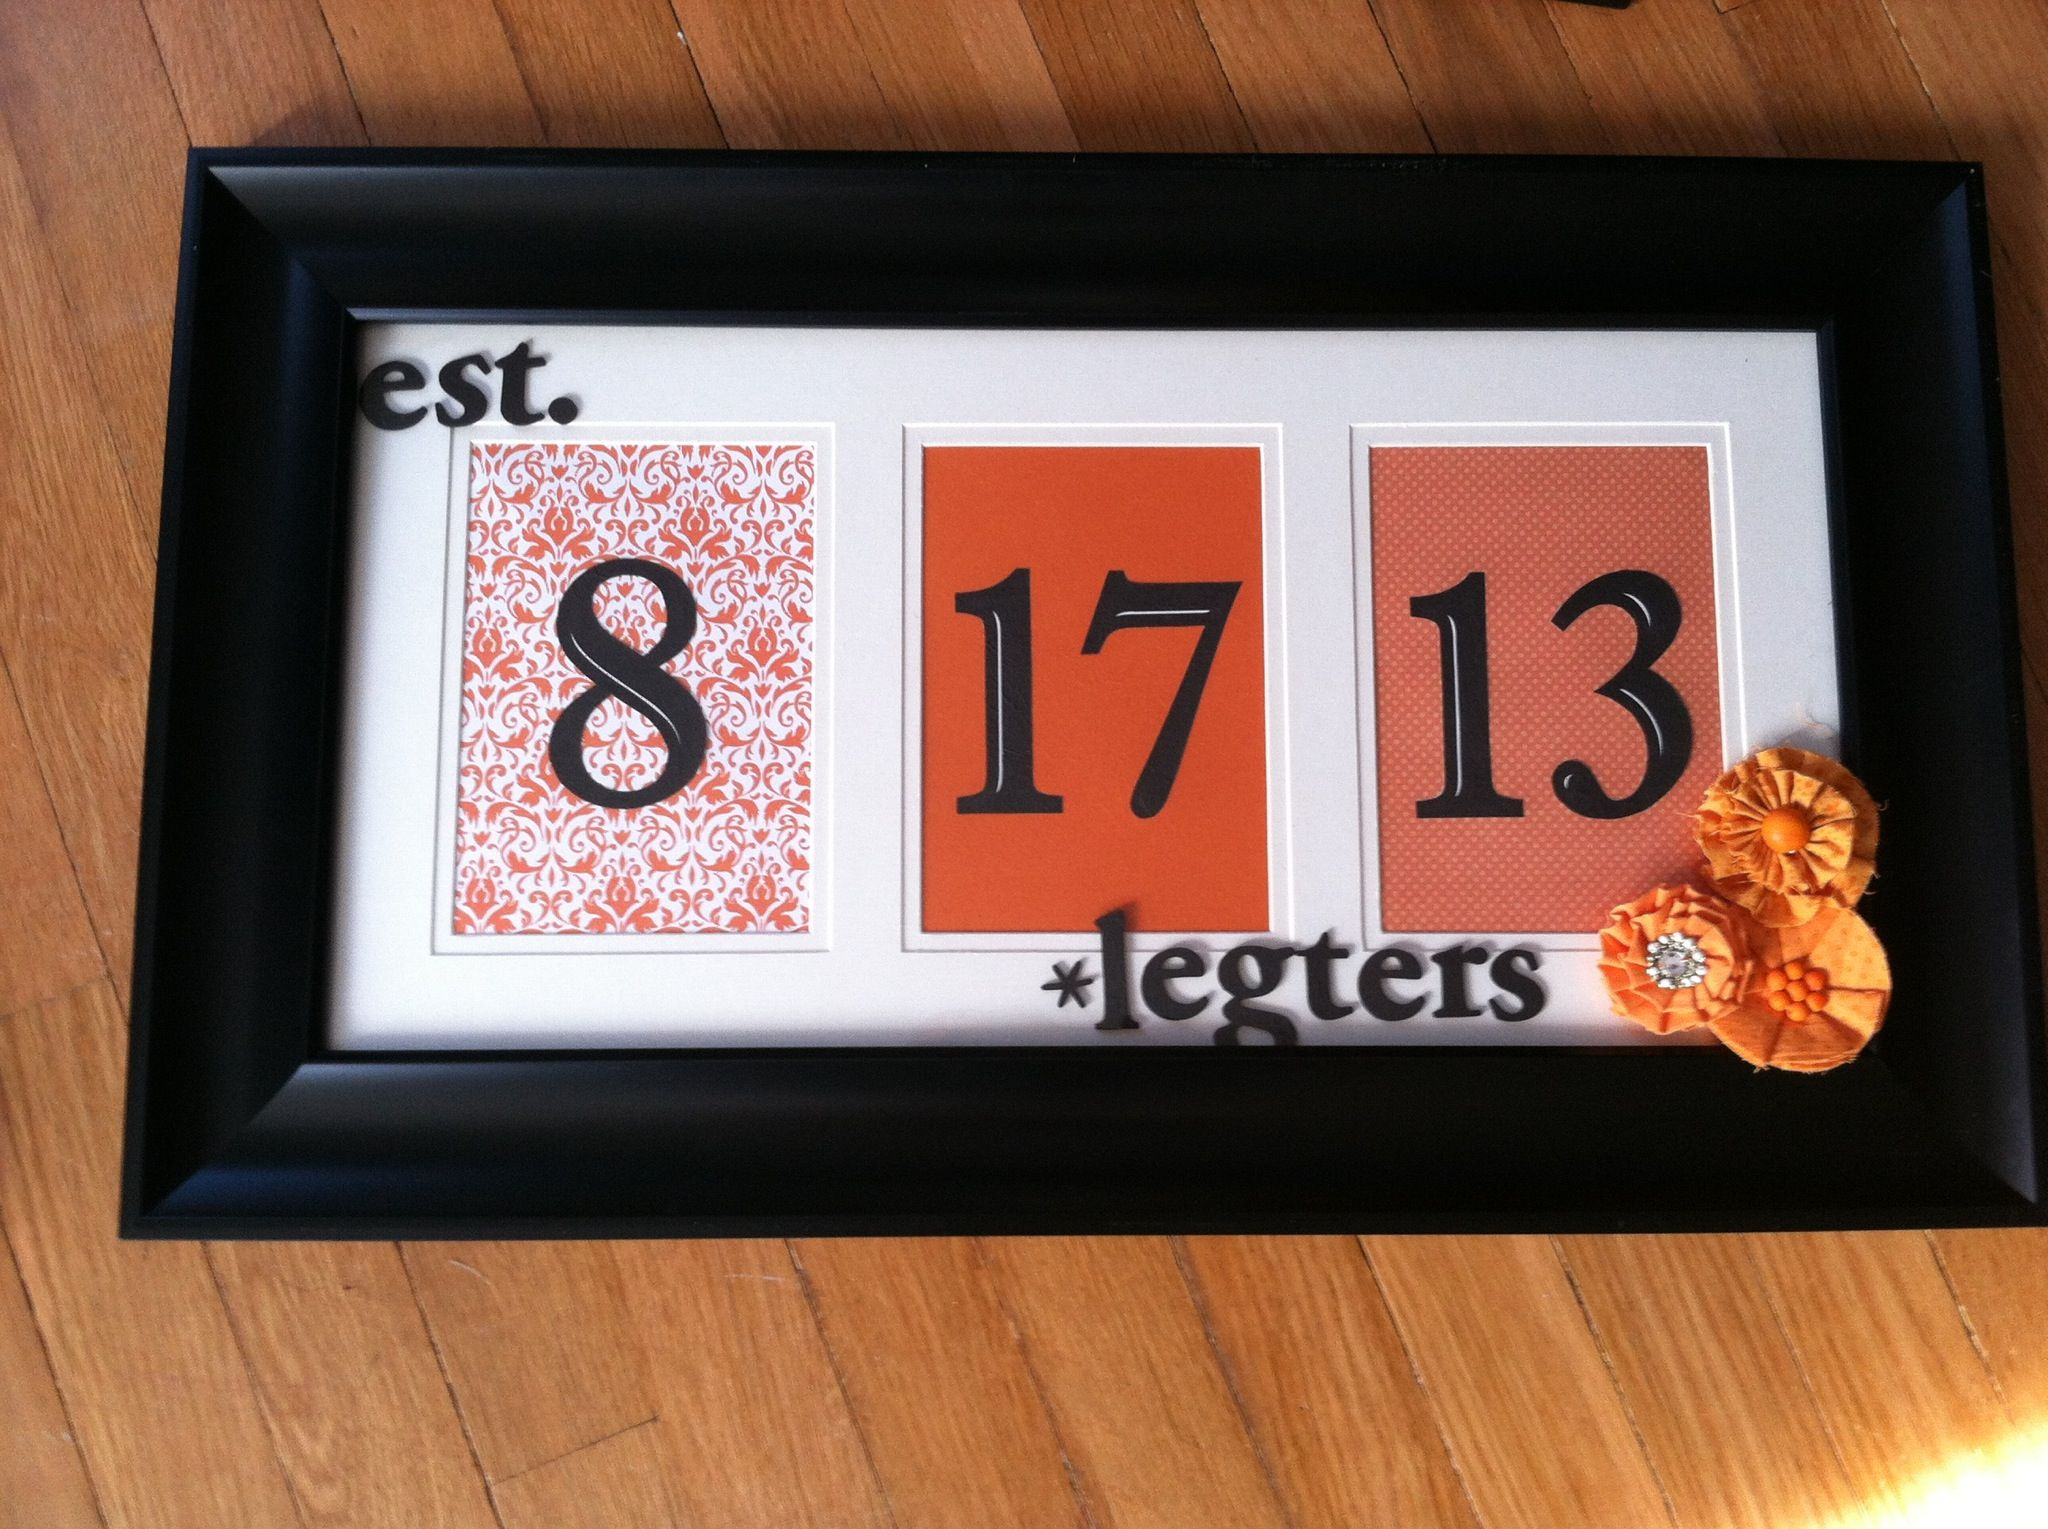 Wedding Date Gift Ideas: Bridal Shower DIY Gift, Wedding Date, Couples Last Name